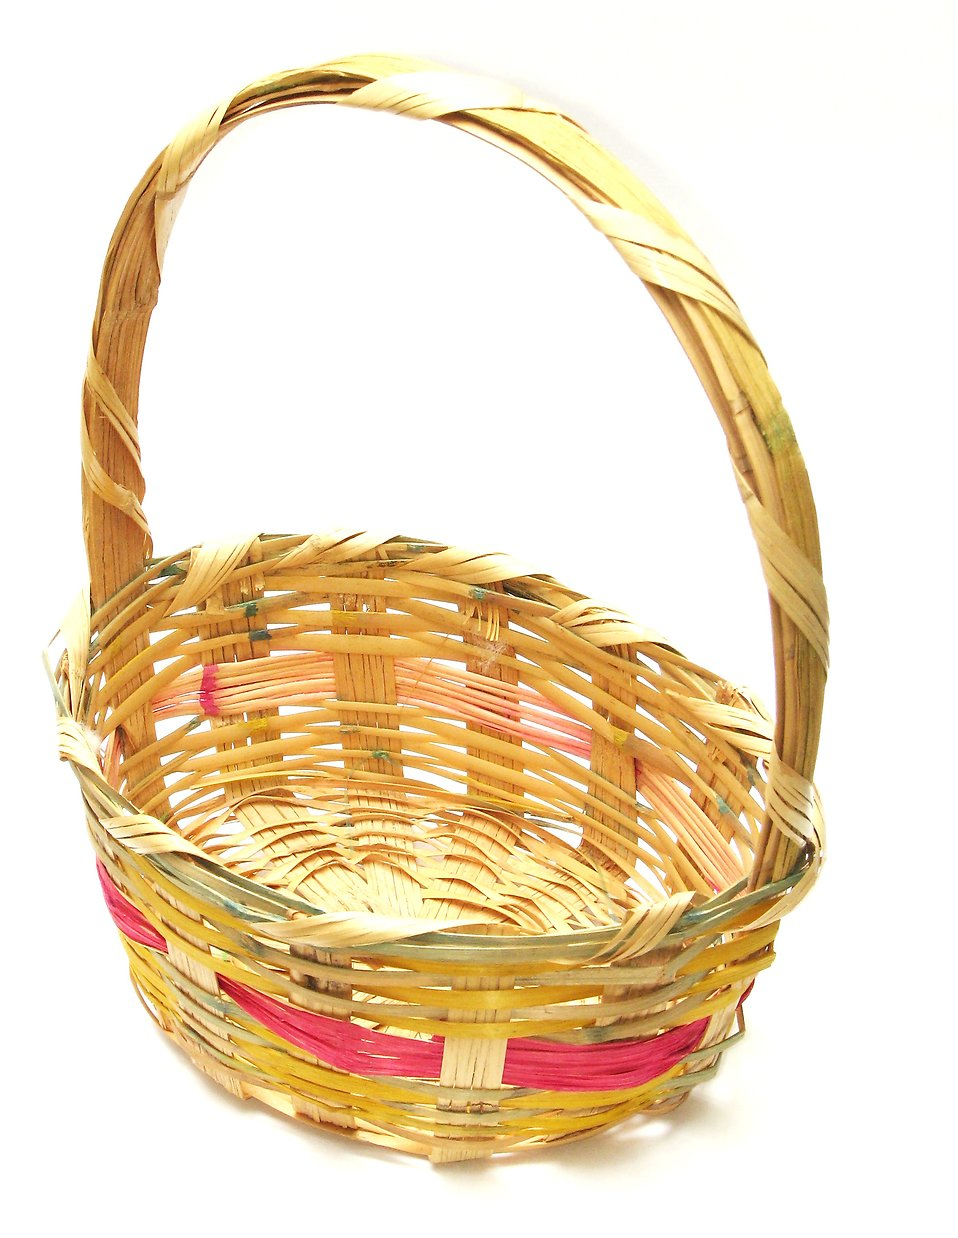 An Easter basket isolated on a white background : Free Stock Photo